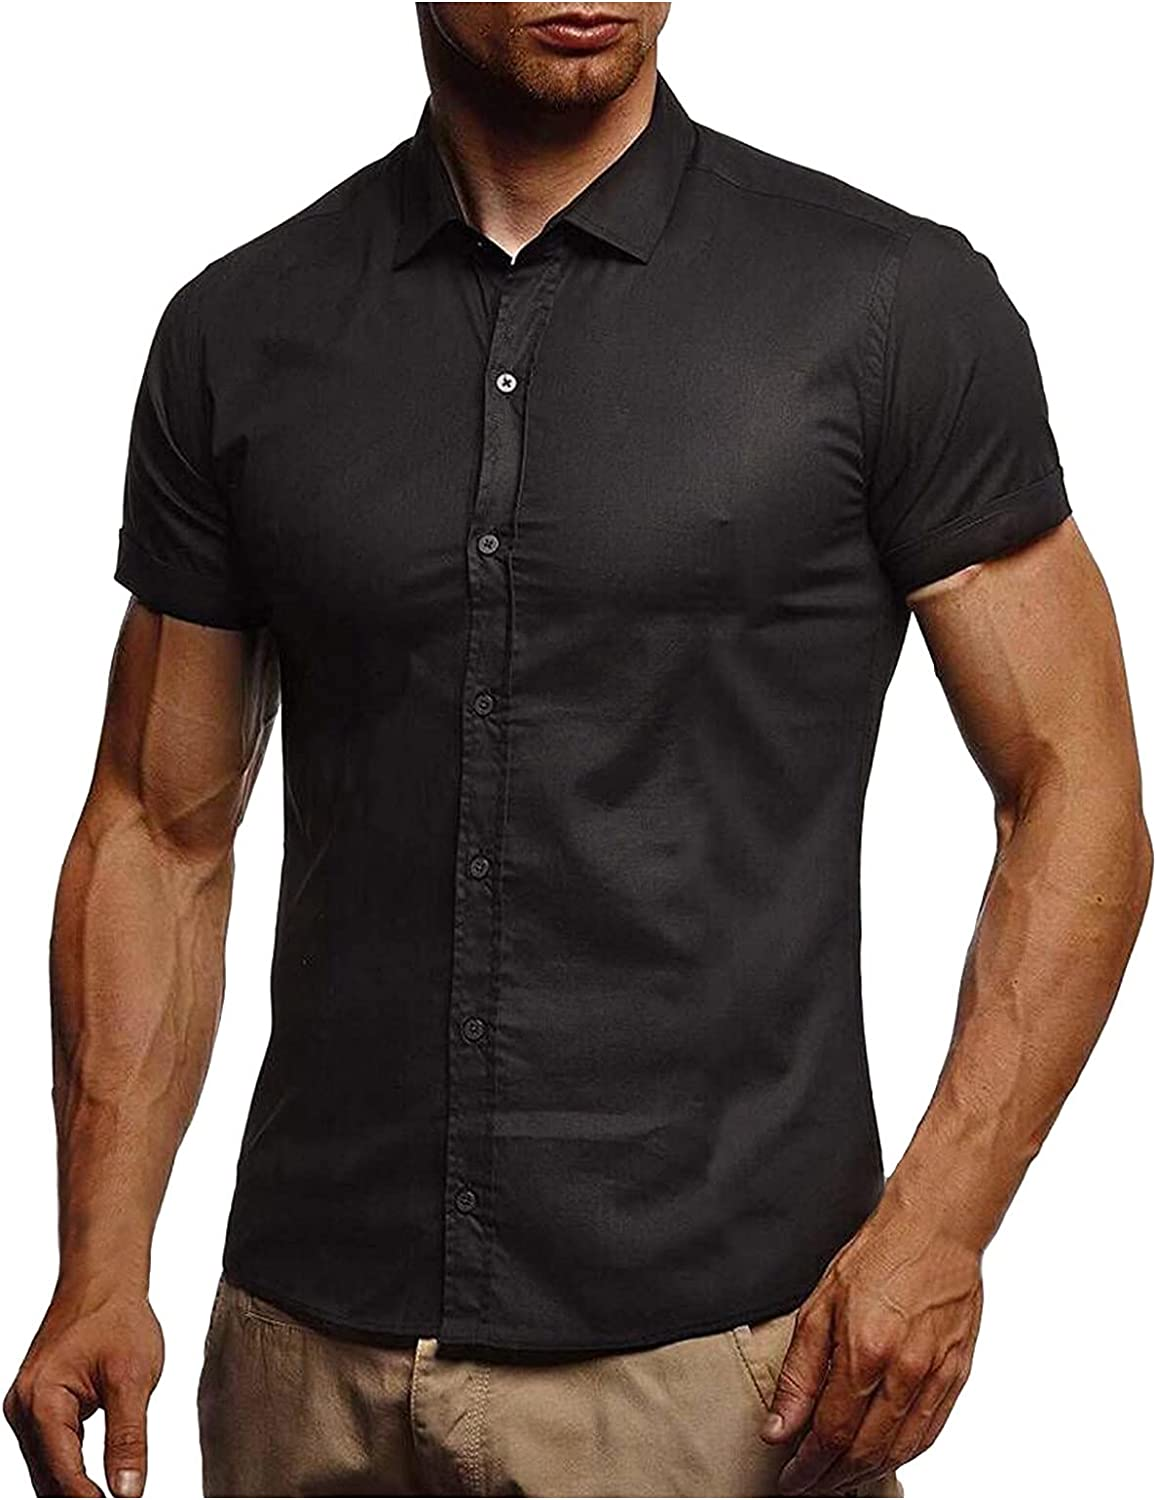 WoCoo Mens Casual Shirts Solid Short Sleeve Button Down Shirt Business Turn-Down Collar Blouse Regular Fit Tops